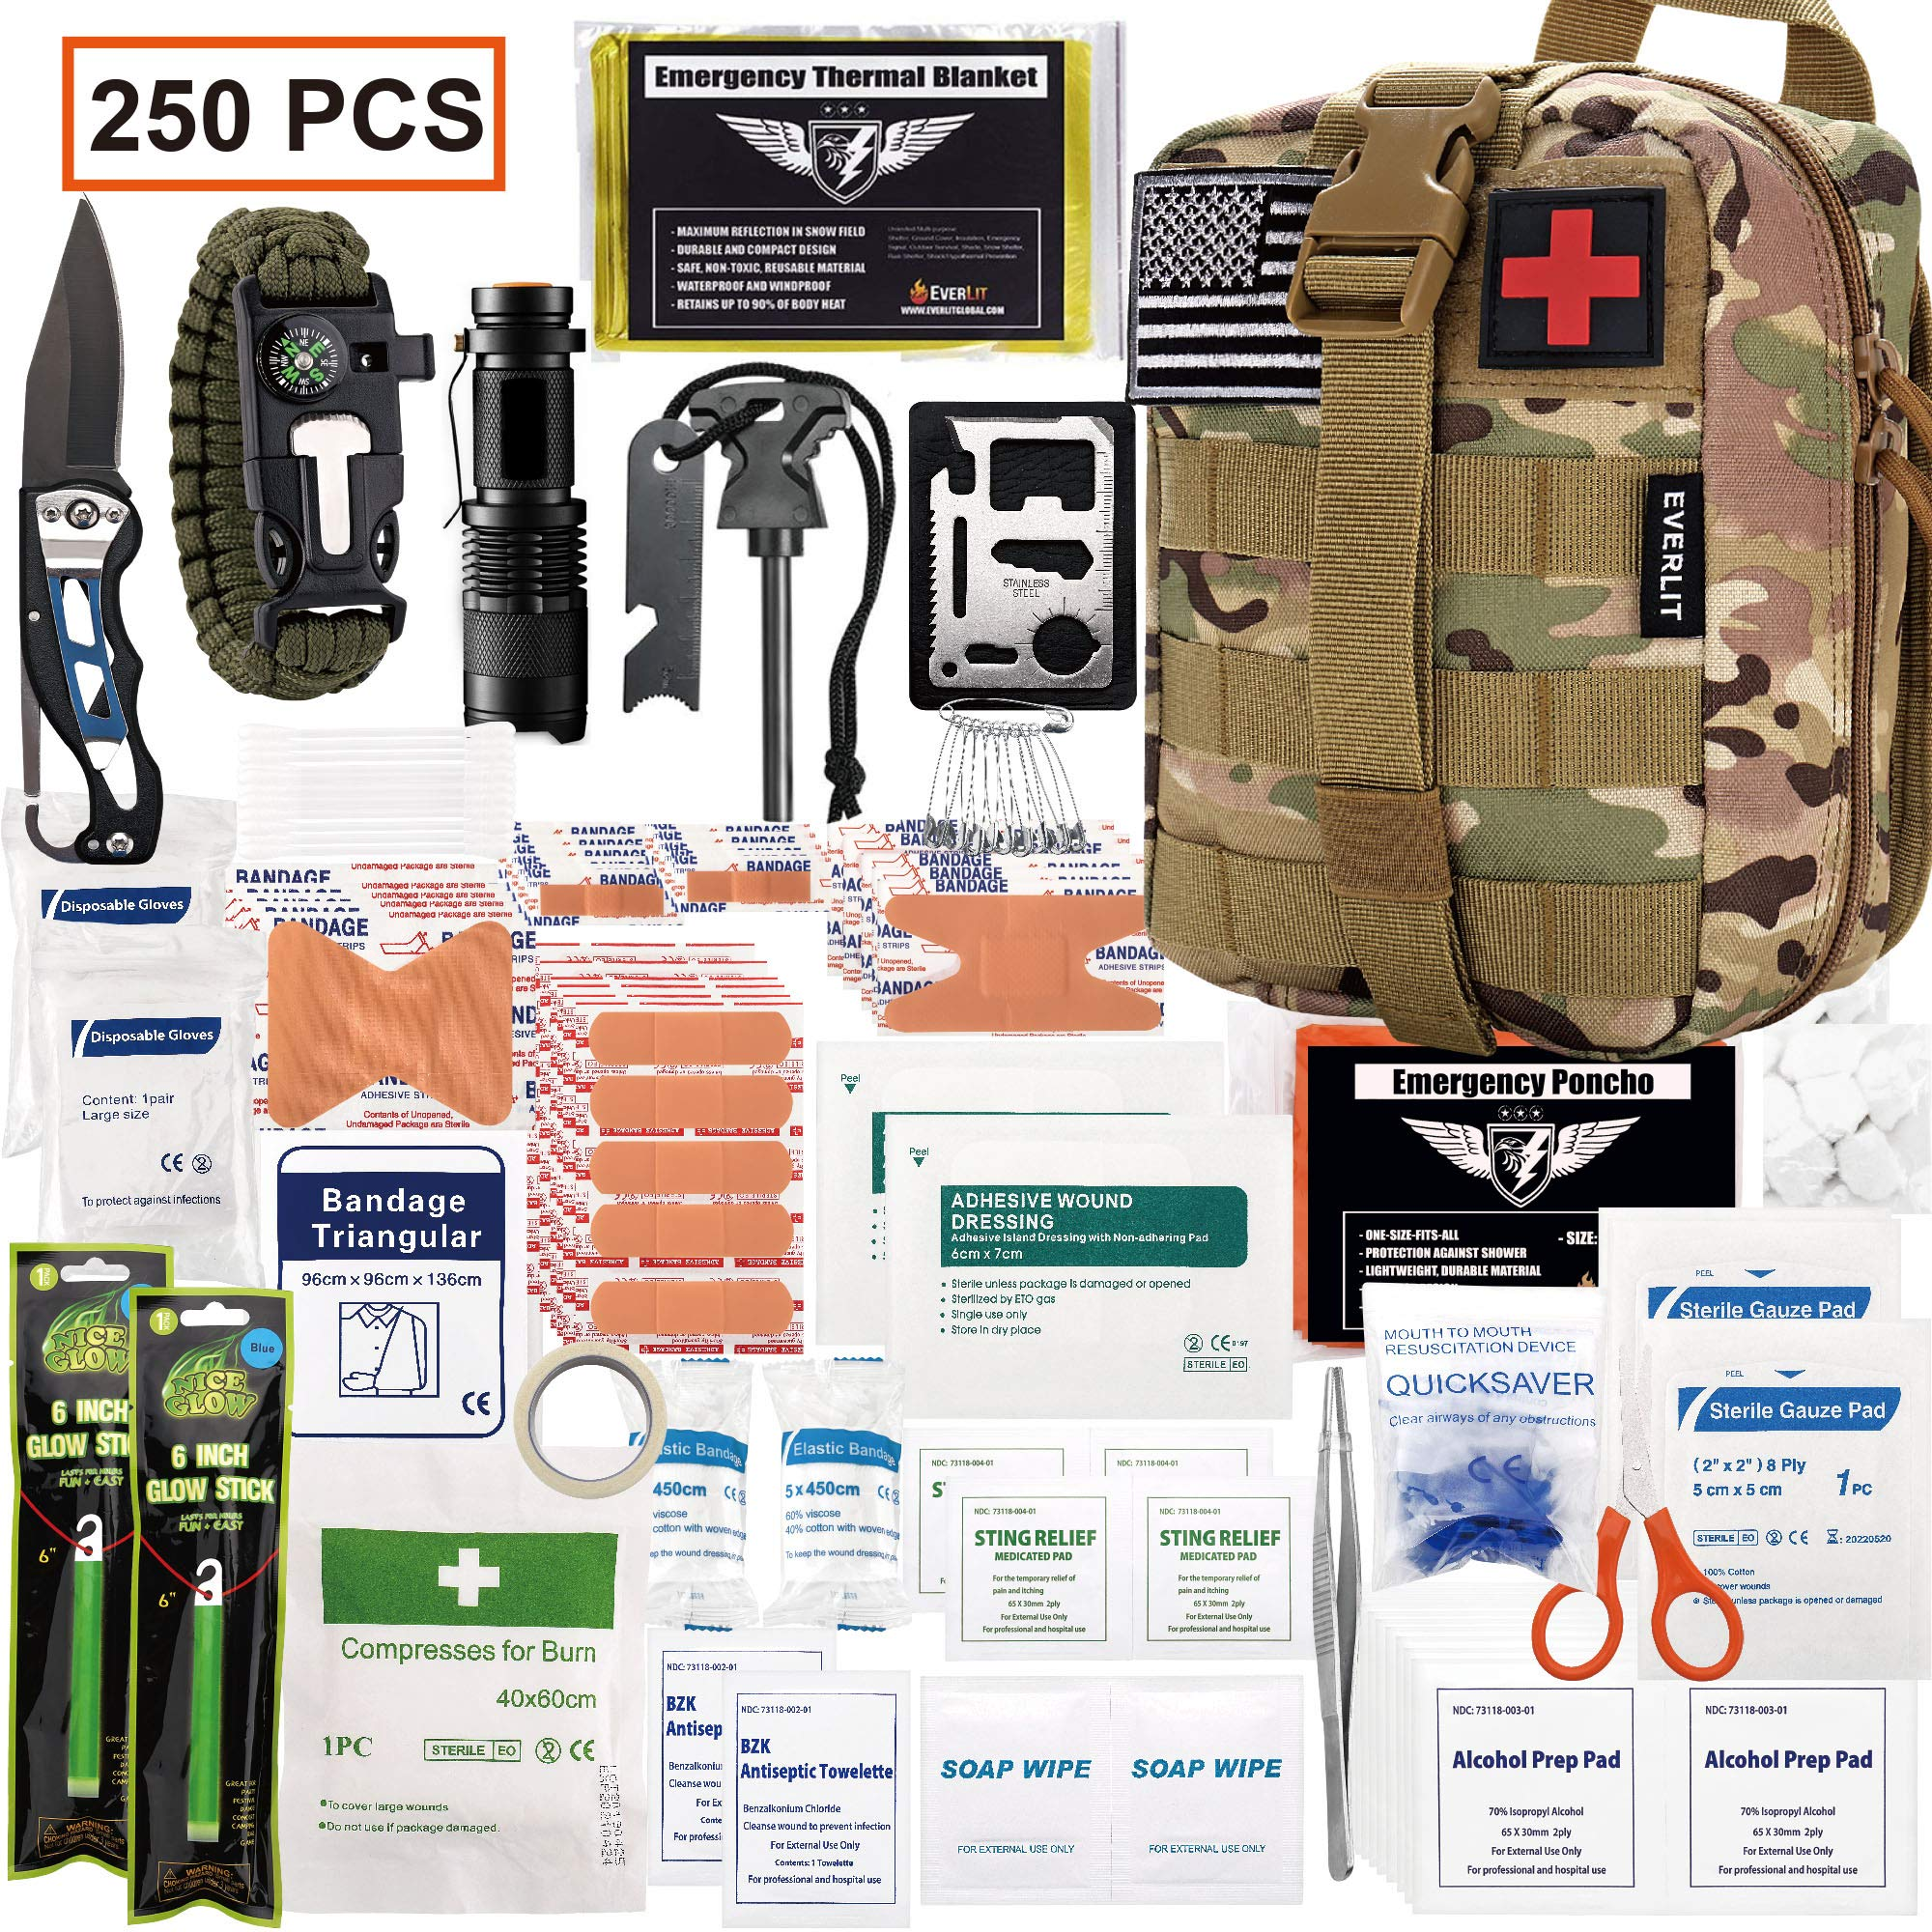 EVERLIT 250 Pieces Survival First Aid Kit IFAK Molle System Compatible Outdoor Gear Emergency Kits Trauma Bag for Camping Boat Hunting Hiking Home Car Earthquake and Adventures (CP Camo) by EVERLIT